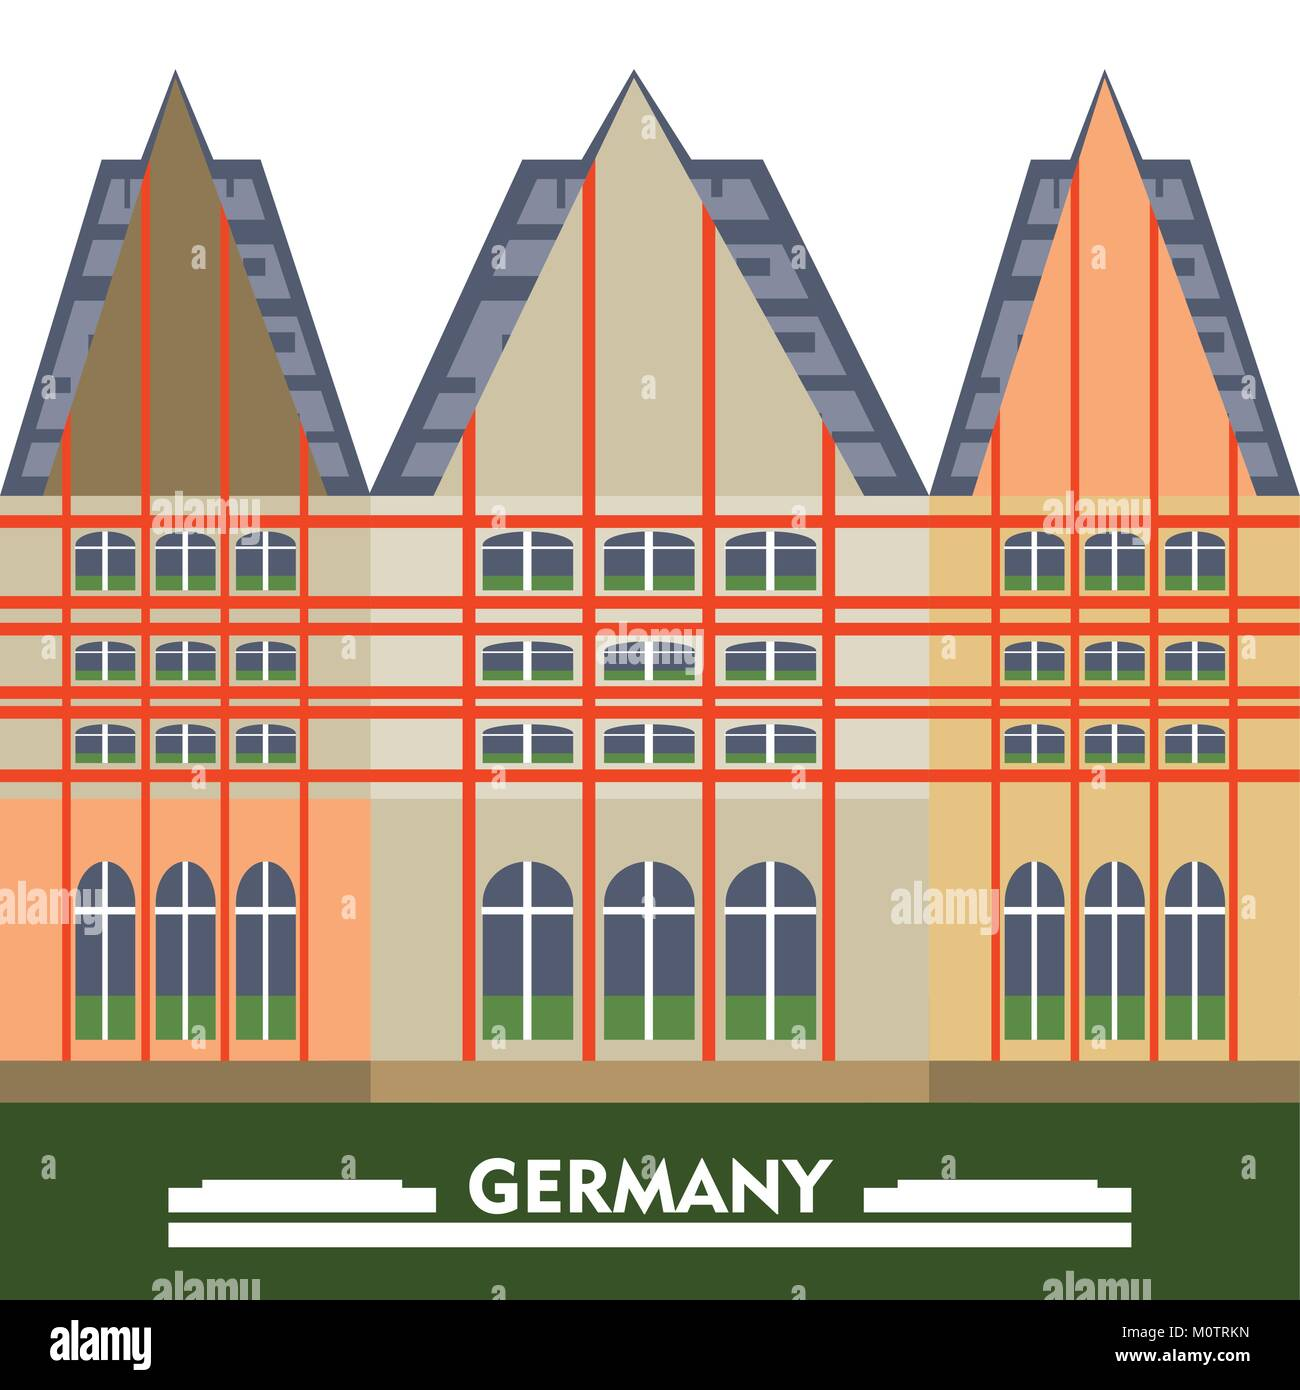 germany design concept - Stock Vector